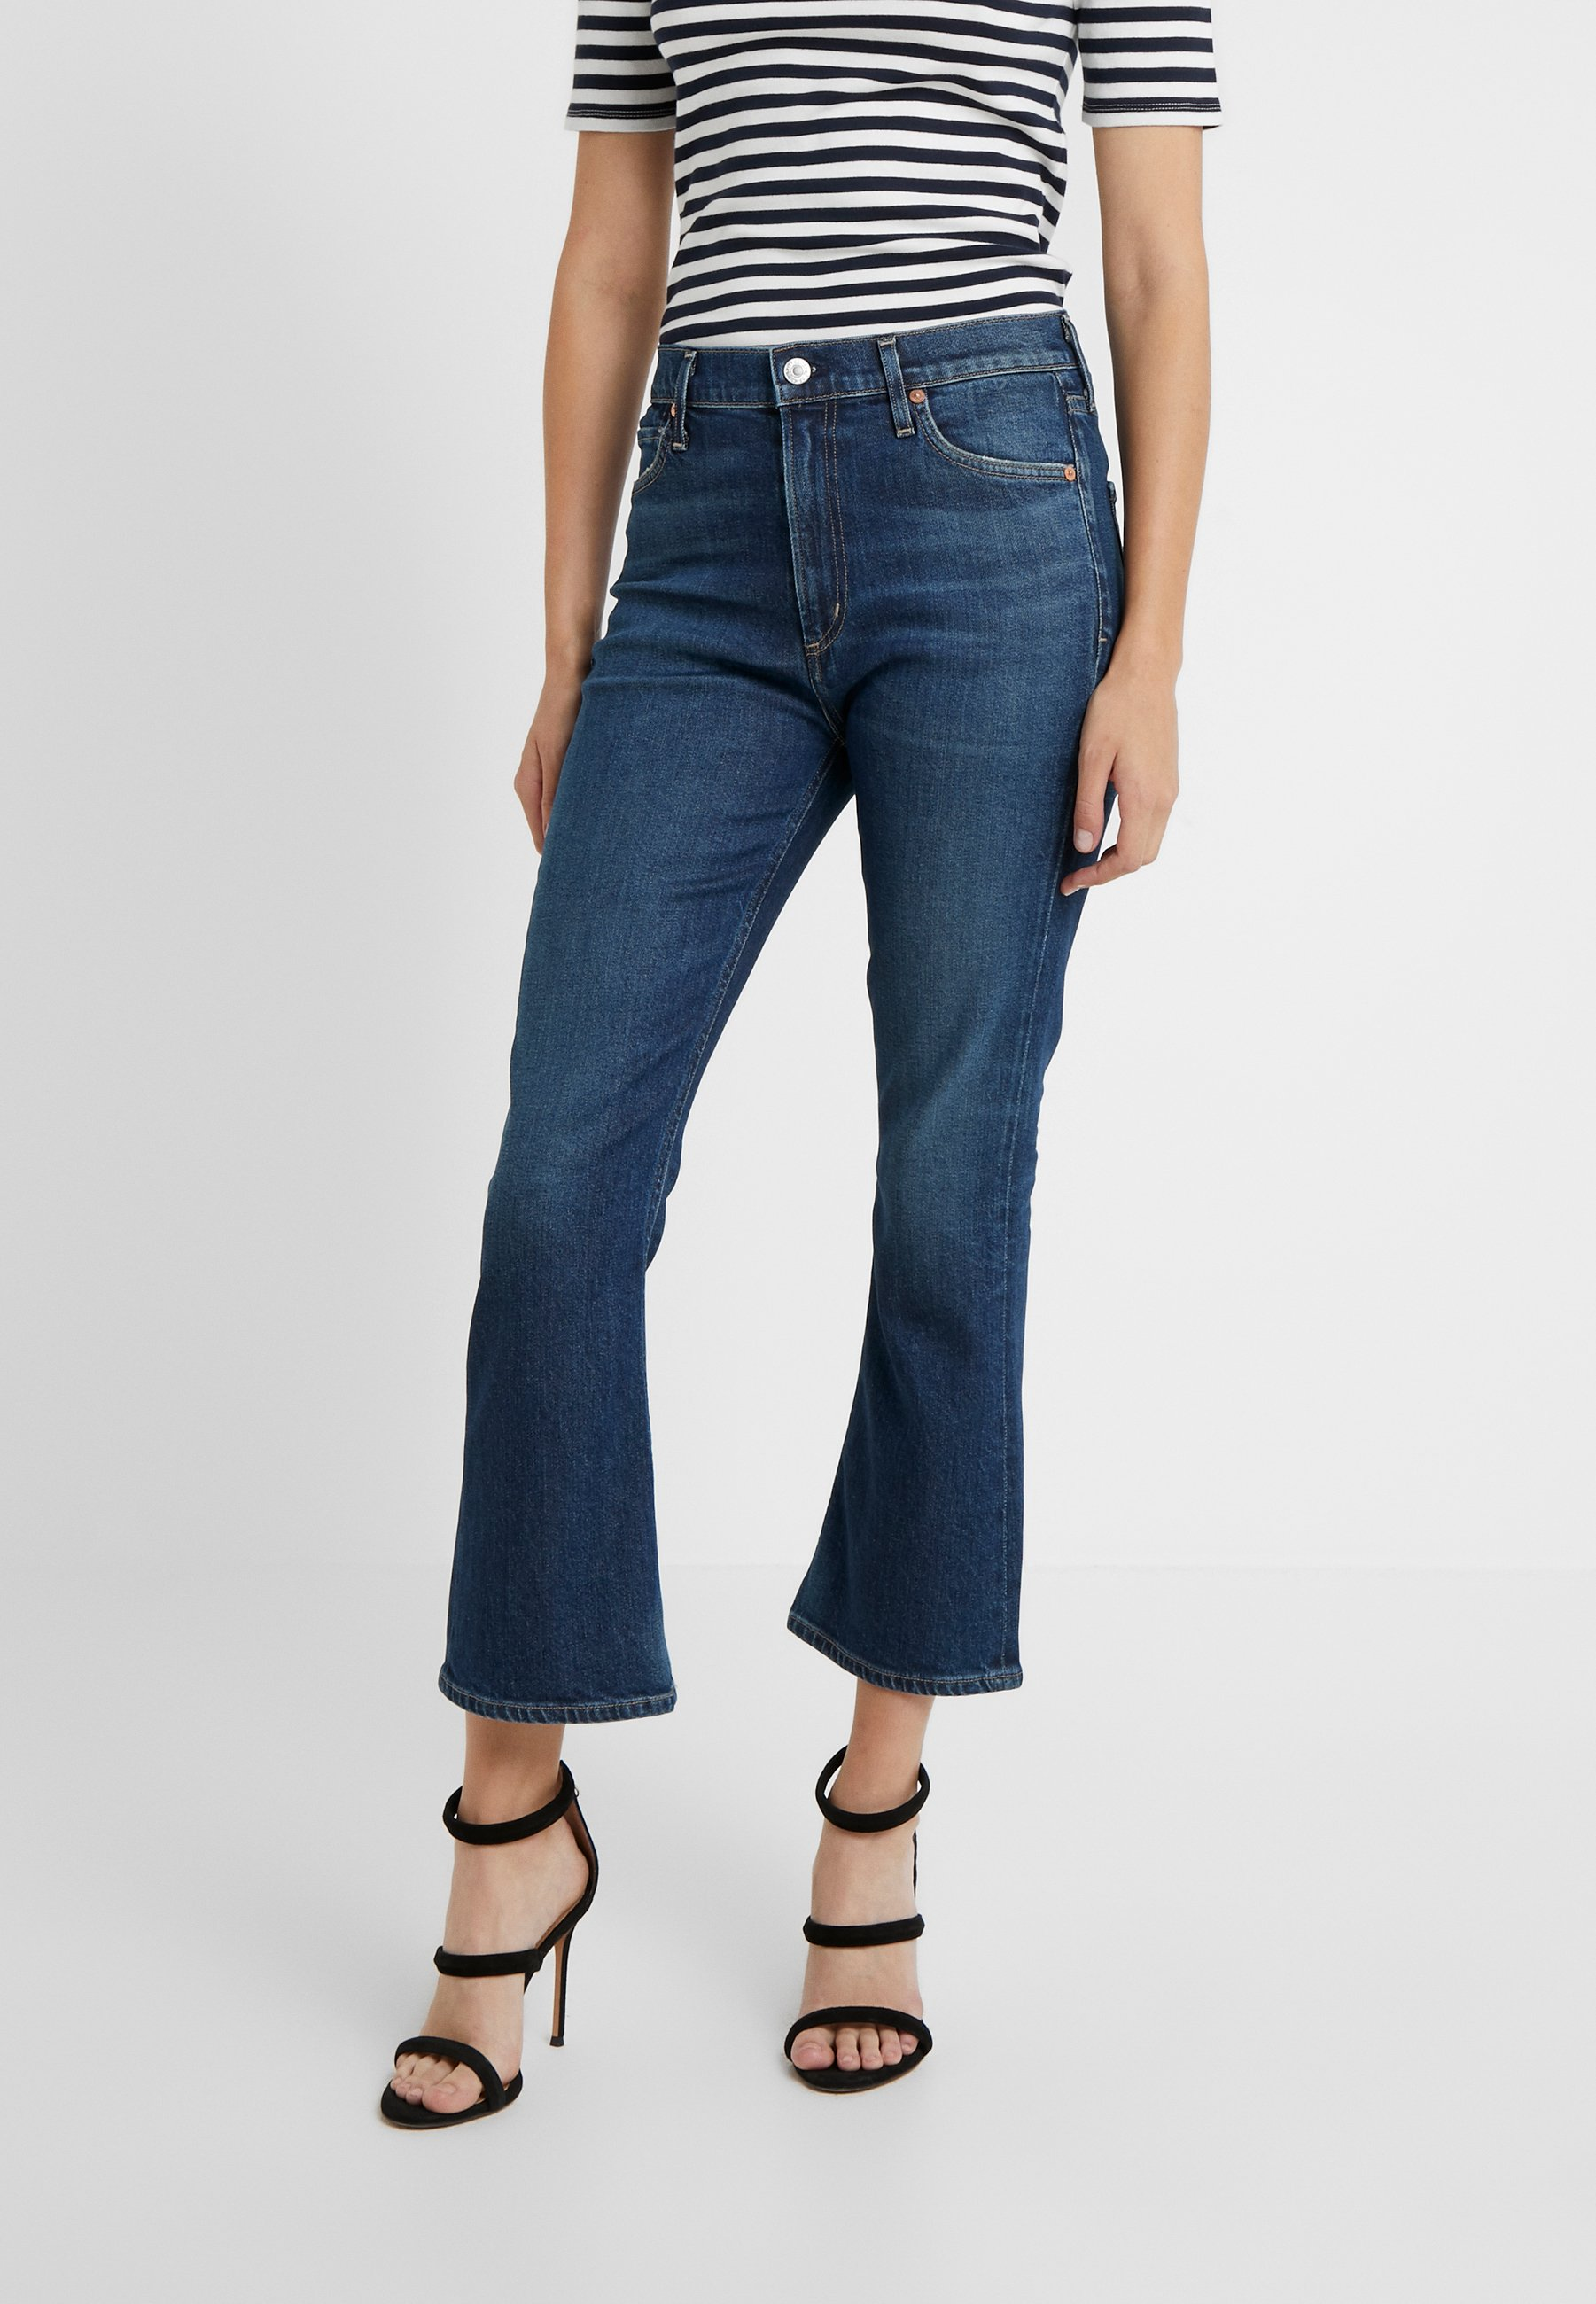 FlareJean Citizens Denim Humanity Demy Blue Of Cropped rBCedxoW